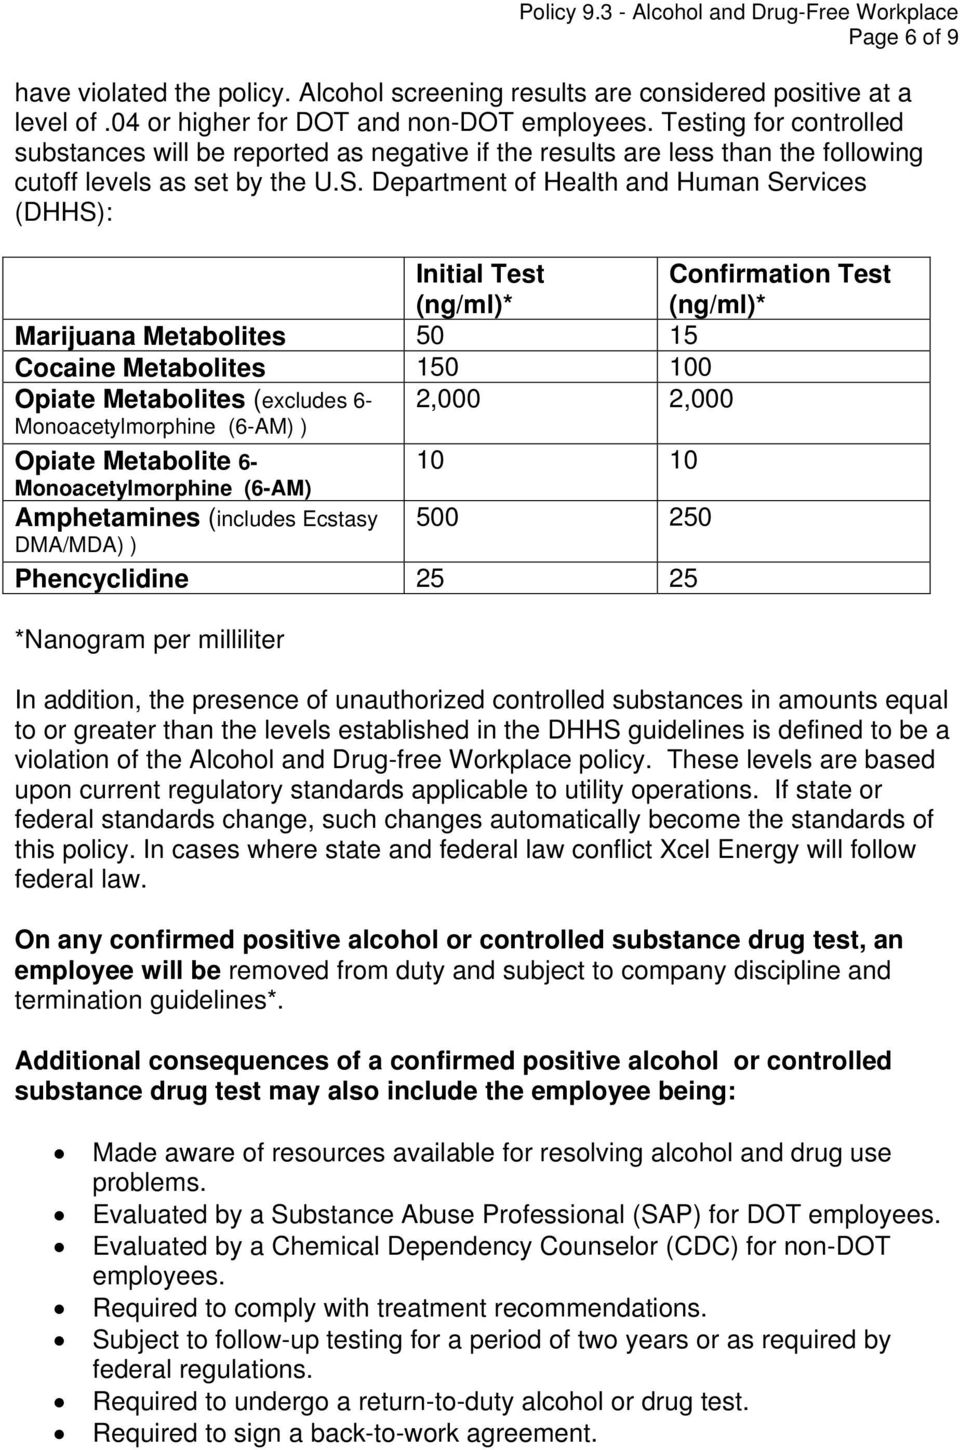 Department of Health and Human Services (DHHS): Initial Test (ng/ml)* Confirmation Test (ng/ml)* Marijuana Metabolites 50 15 Cocaine Metabolites 150 100 Opiate Metabolites (excludes 6-2,000 2,000